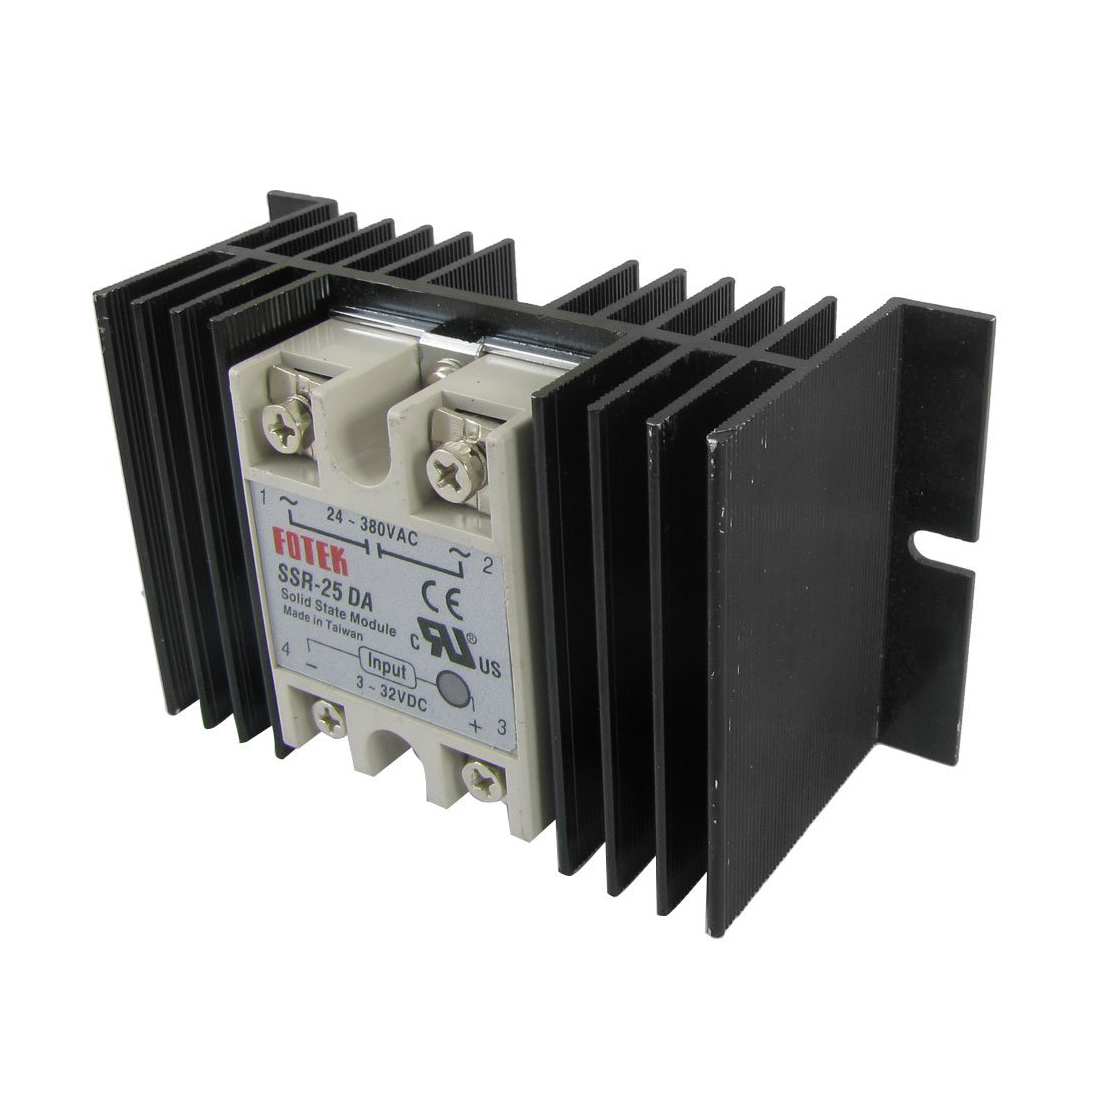 цена на DC to AC Solid State Relay SSR-25DA 25A 3-32V 24-380V + Aluminum Heat Sink